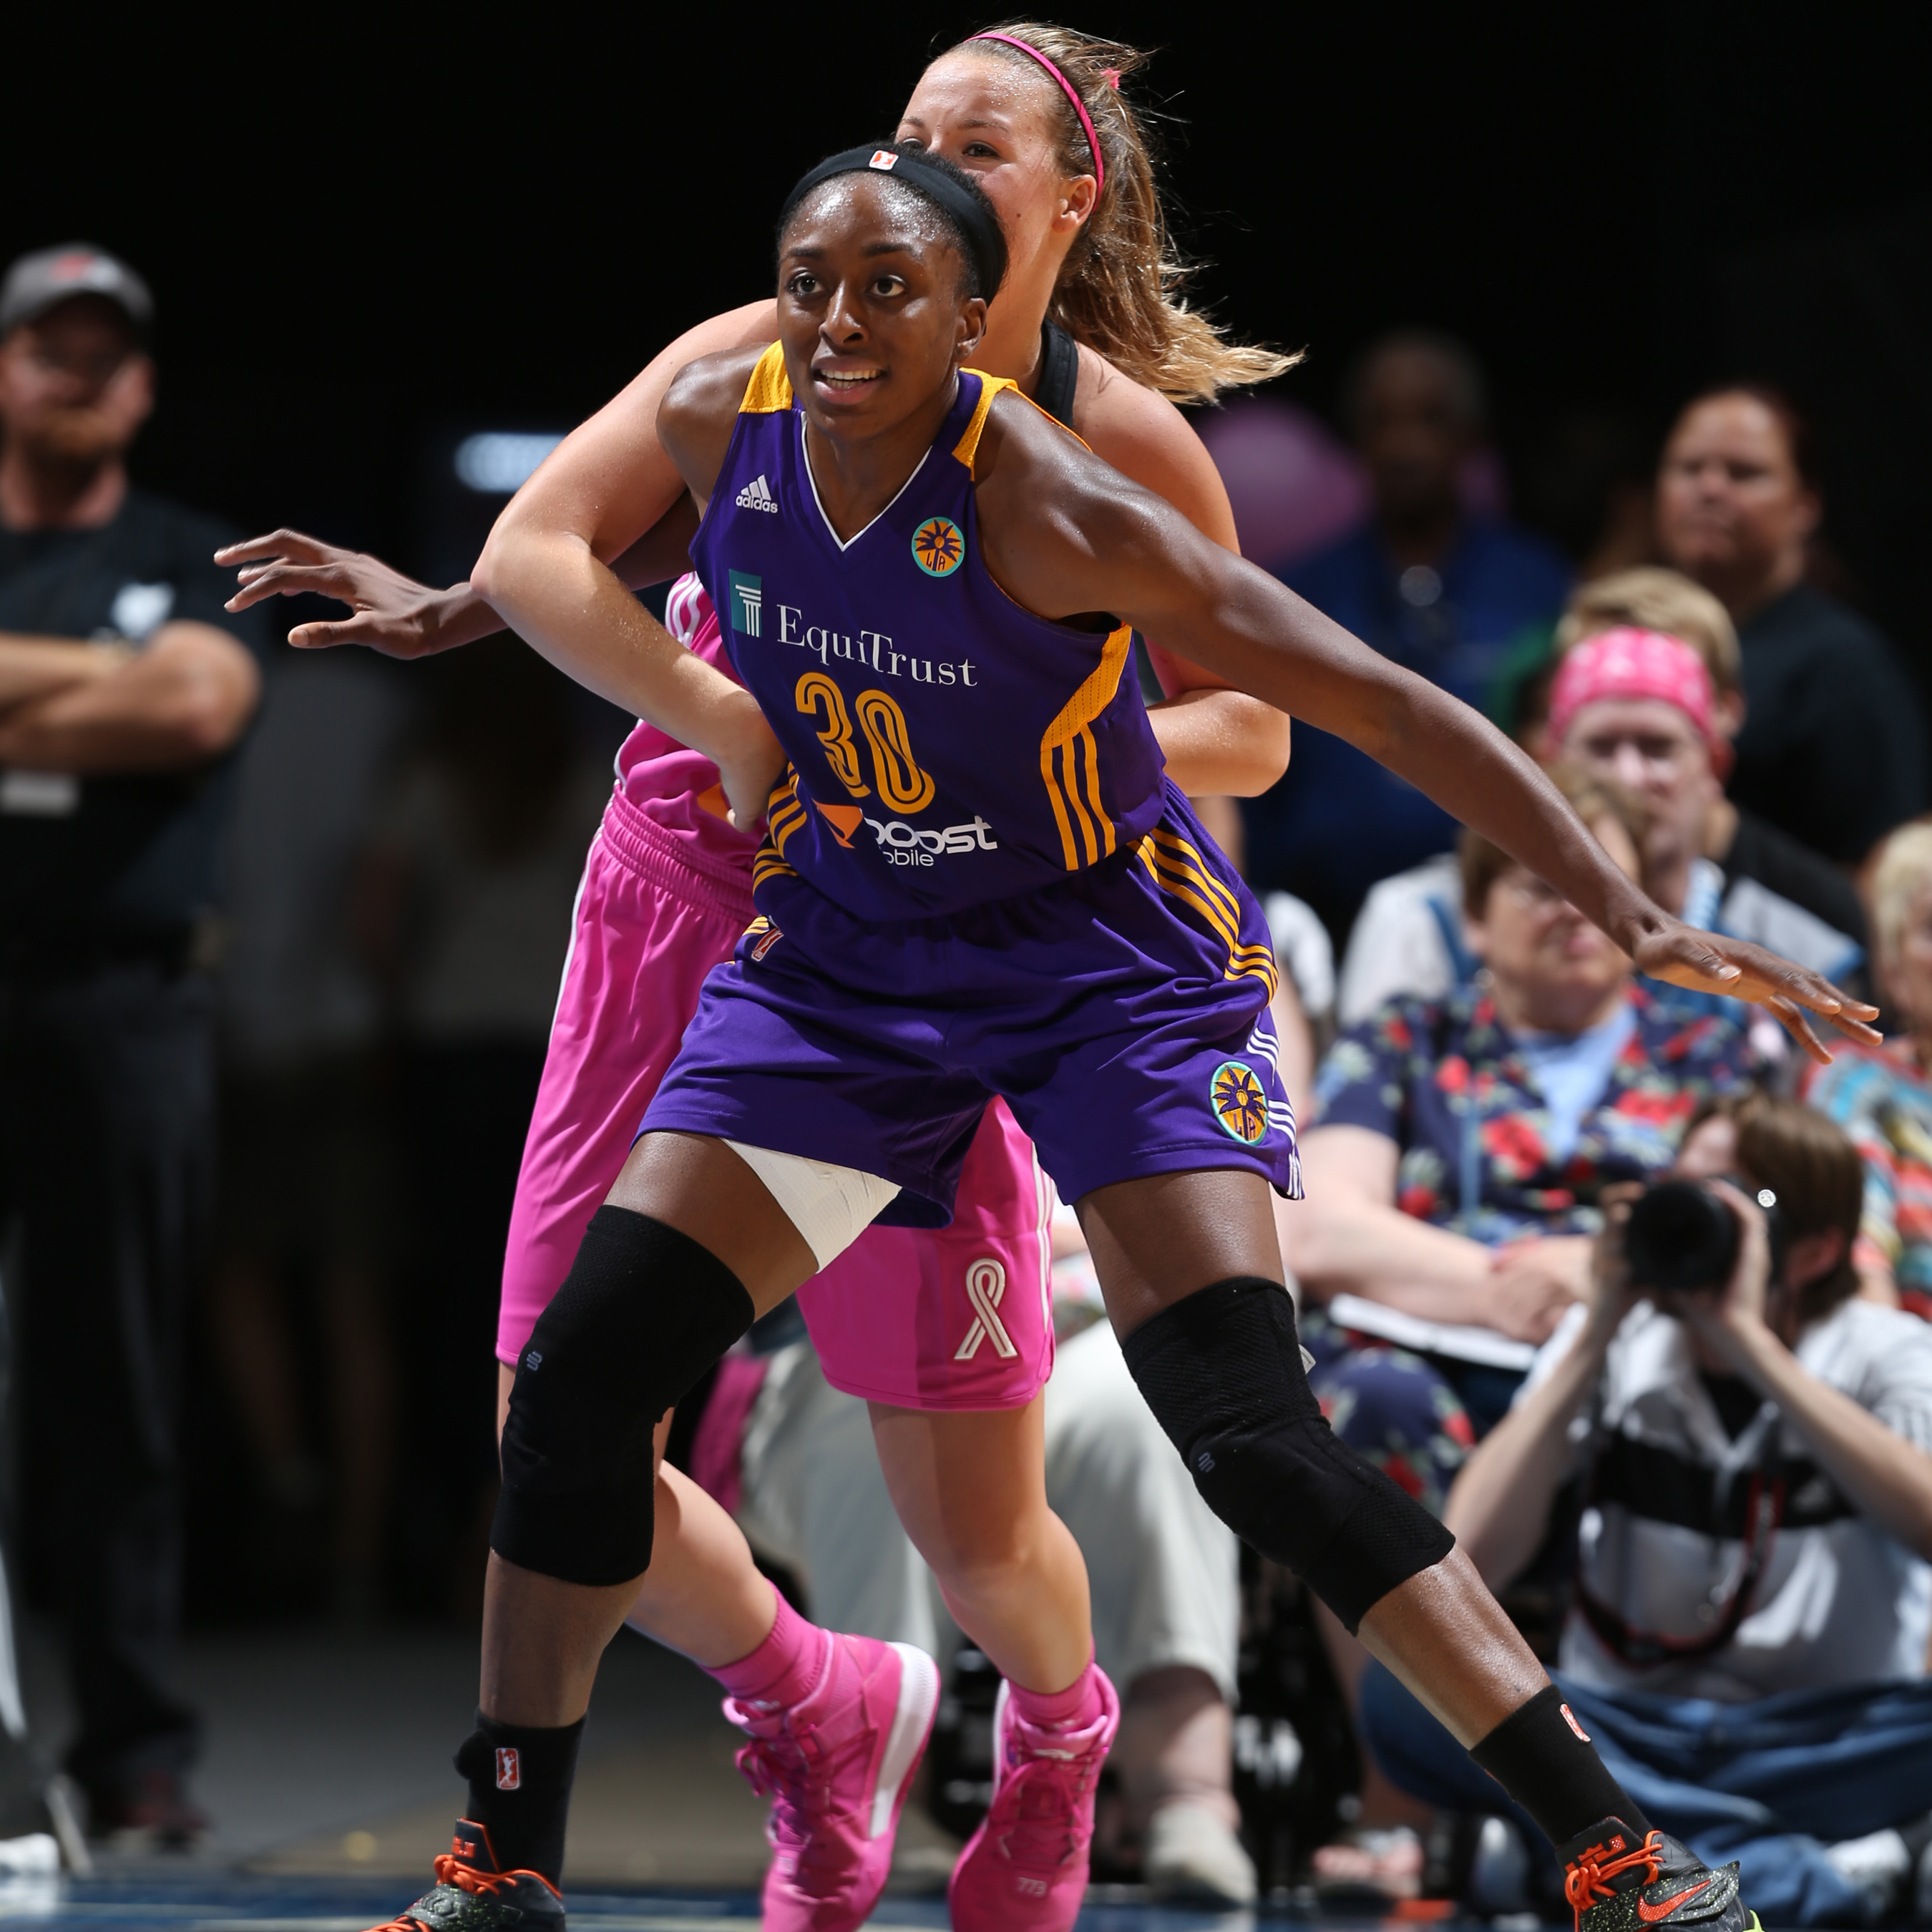 Sparks forward Nneka Ogwumike did her best to lead Los Angeles to a win that night, but fell just short. Ogwumike had a team-high 18 points to go with her five rebounds.